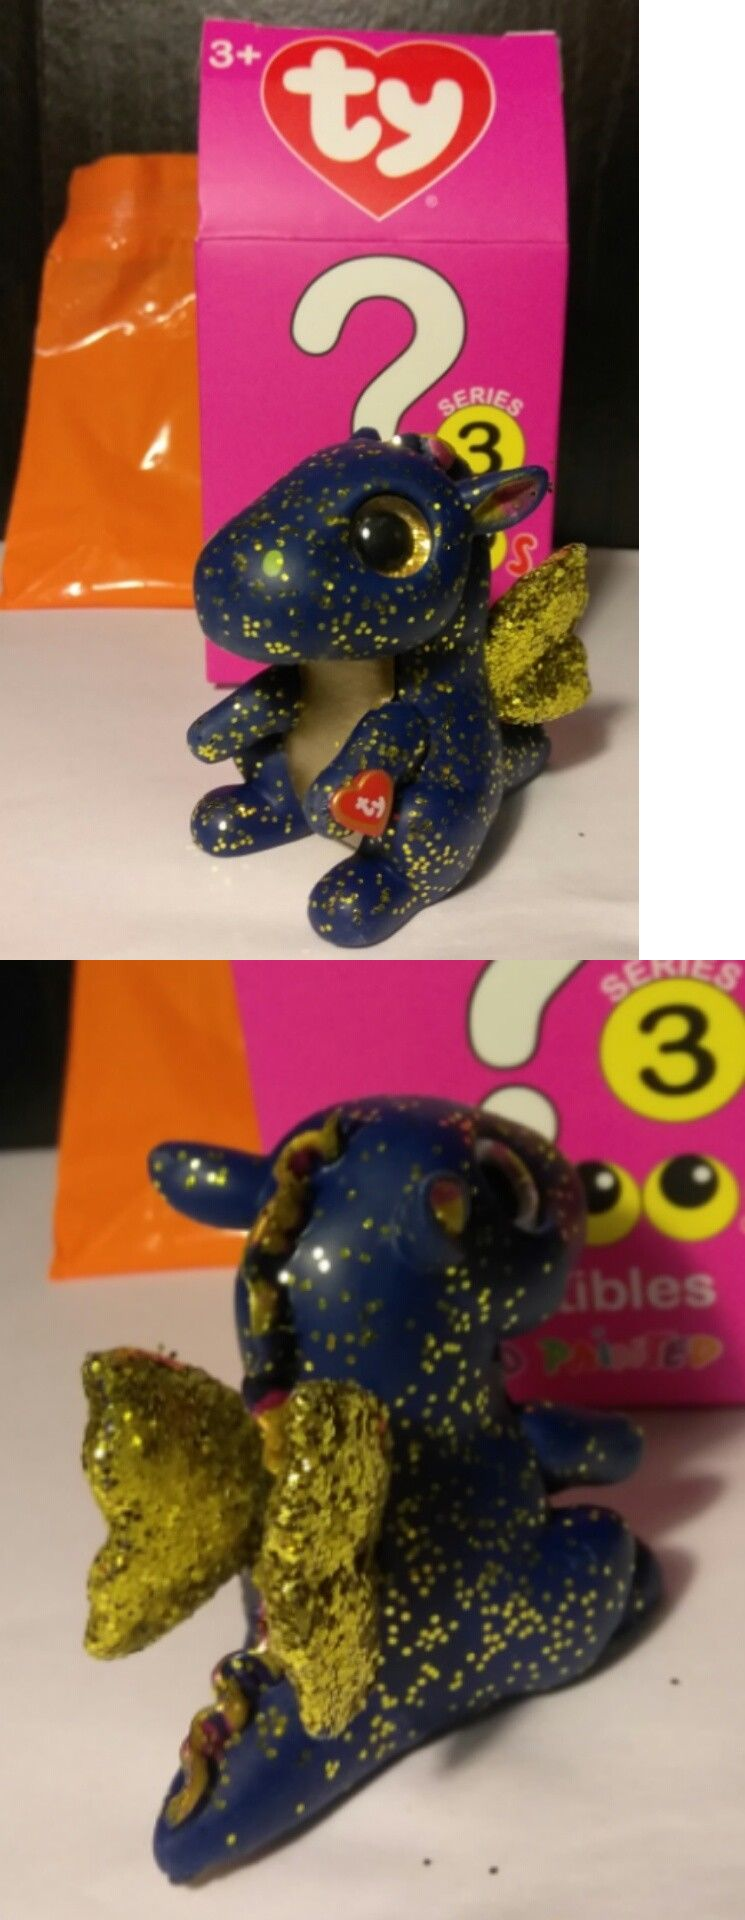 Series 3 SAFFIRE the Dragon Mystery Chaser TY Beanie Mini Boo